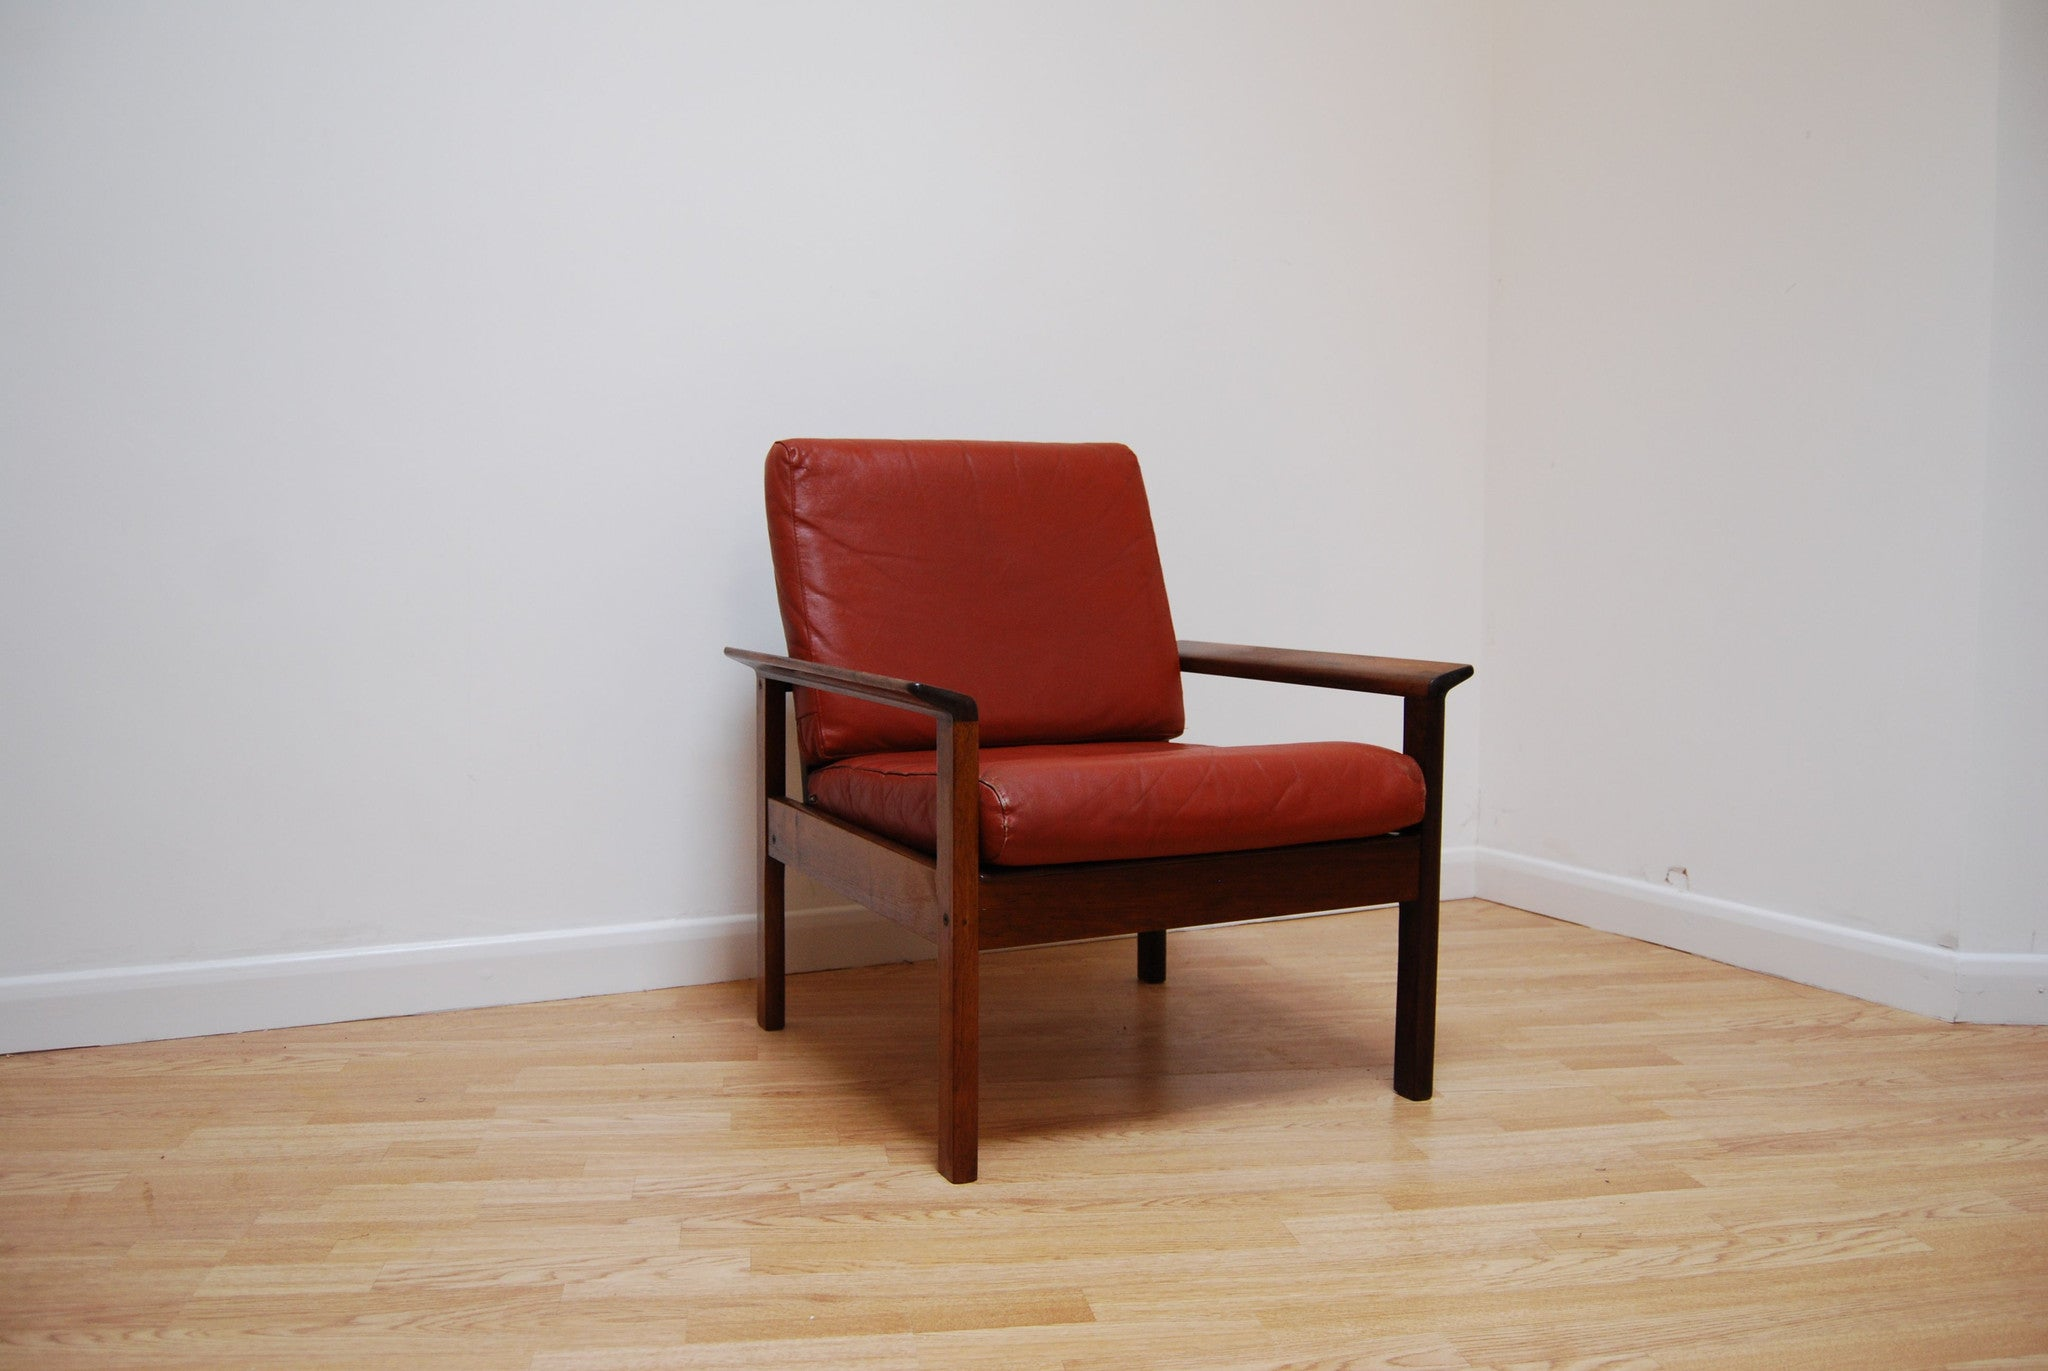 Lounge chair in rosewood and leather